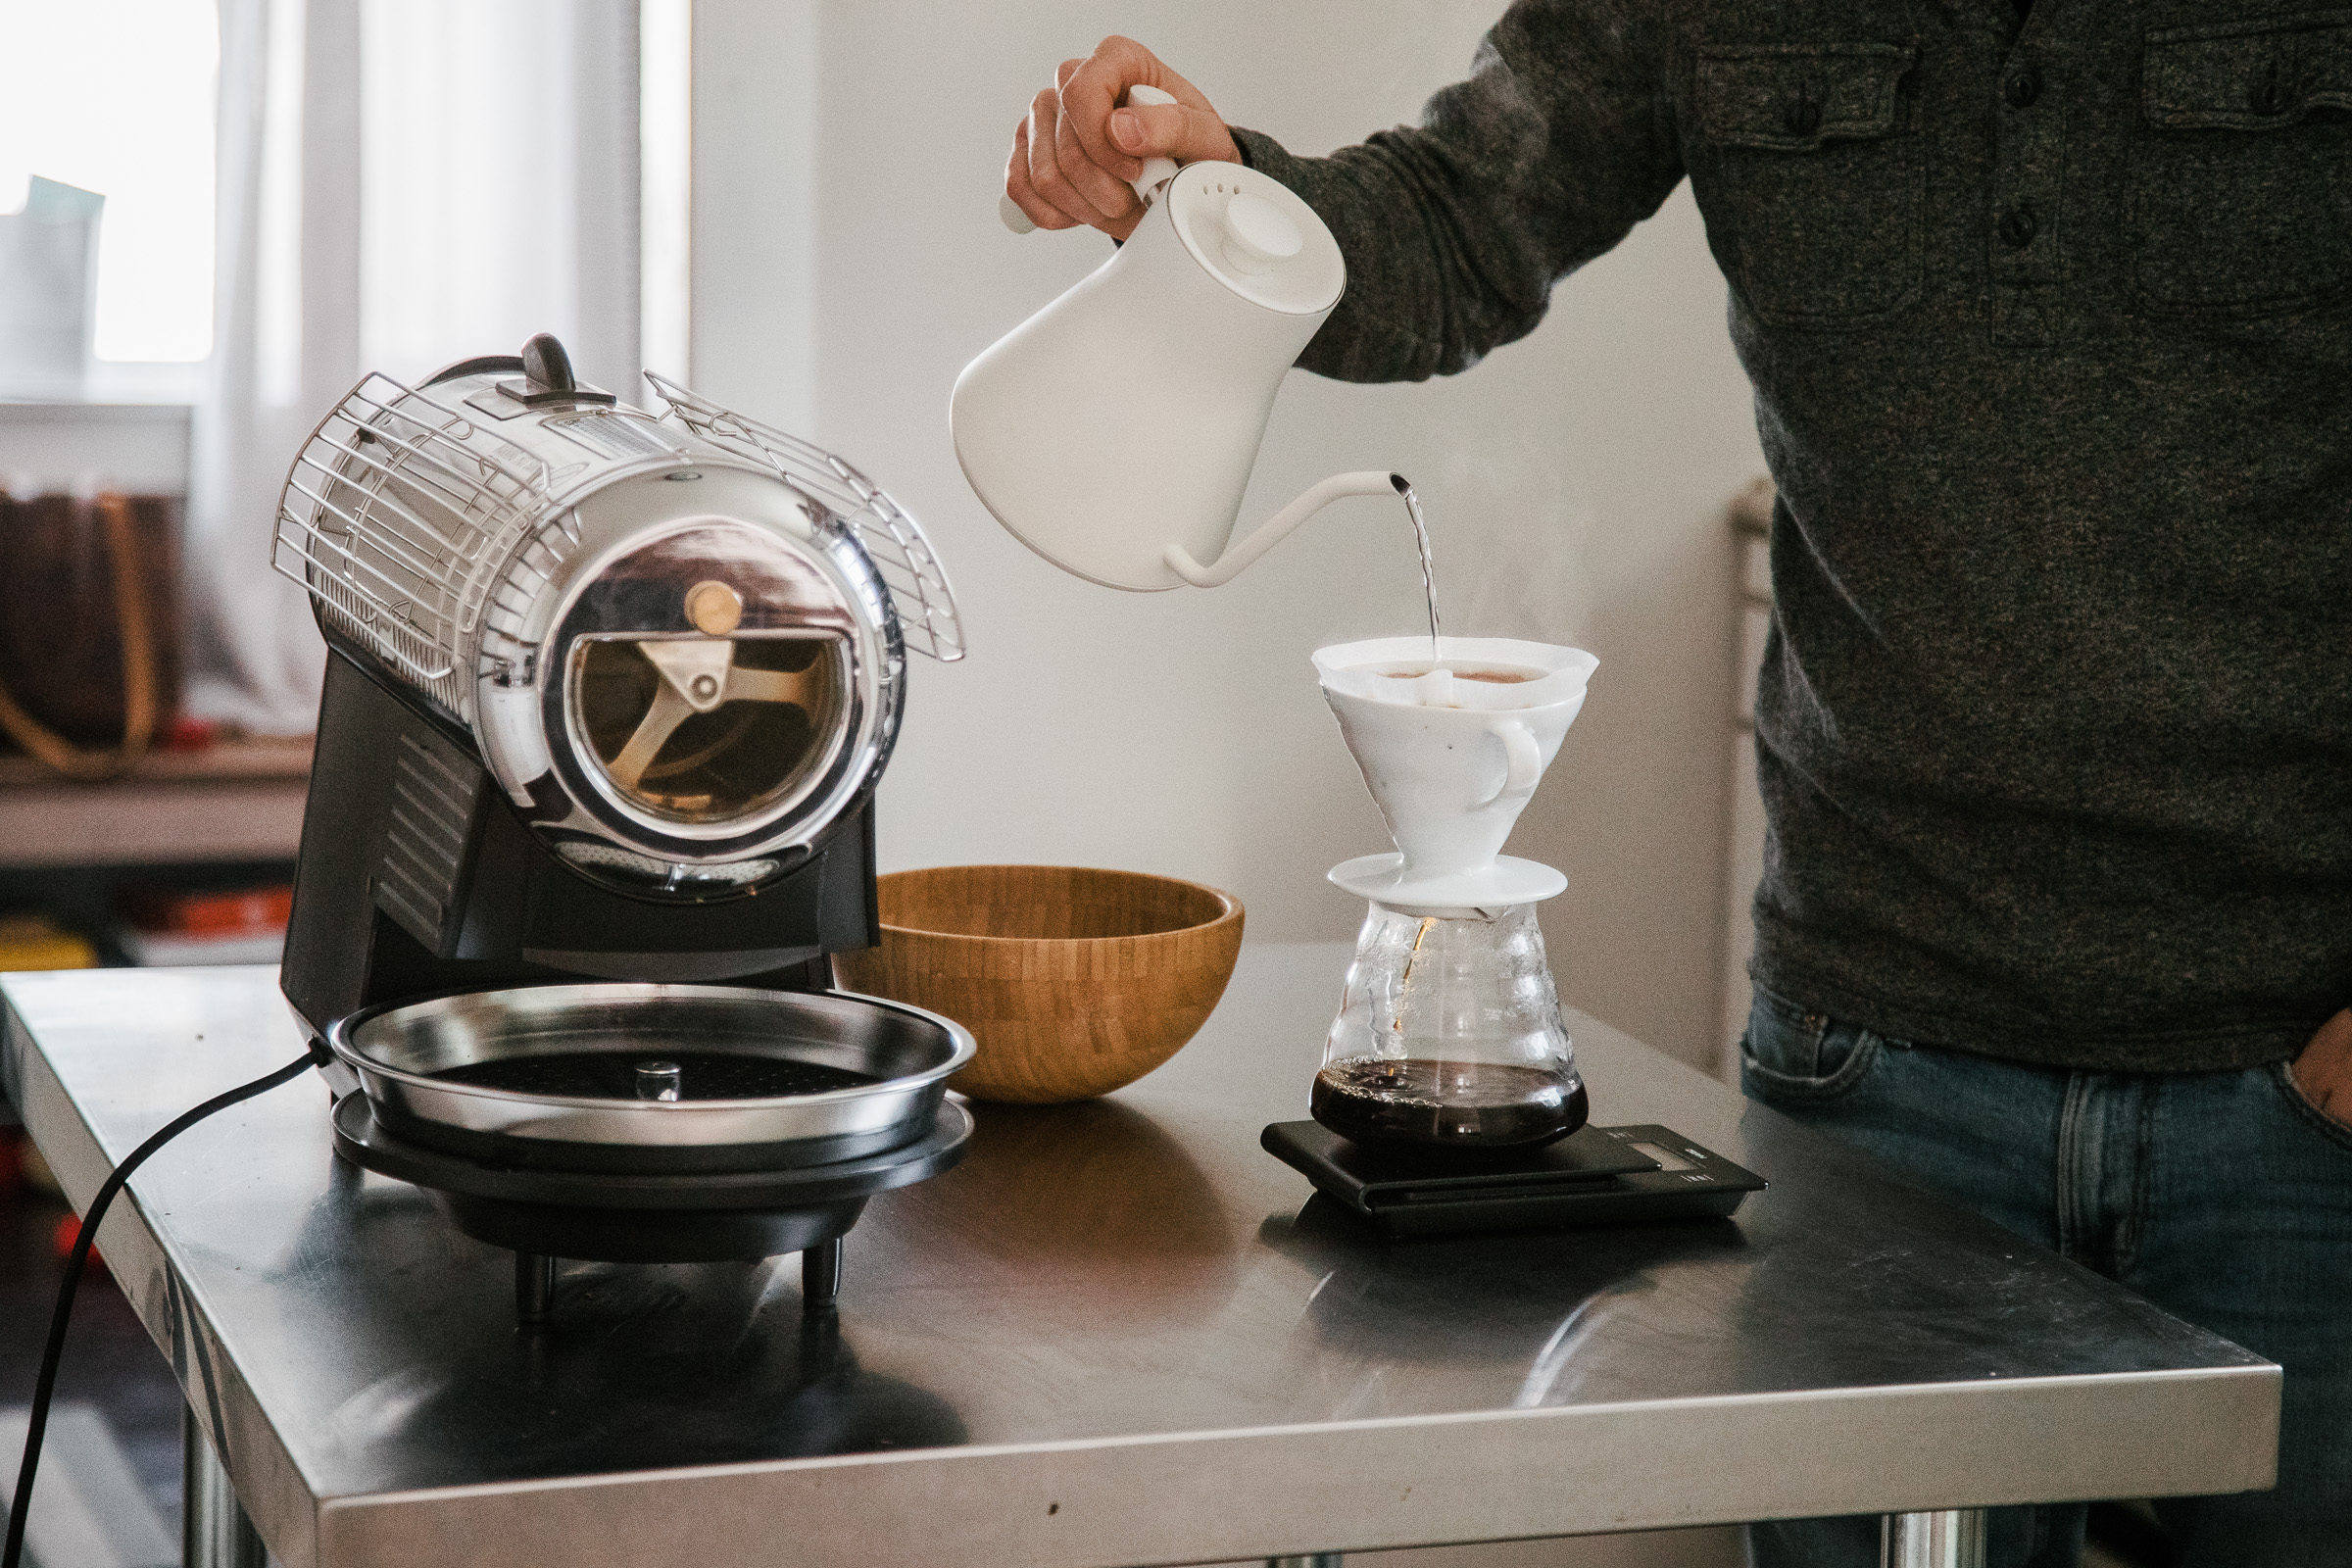 A person brewing coffee with a Hario V 60 pour over brewer next to a Hottop Coffee Roaster.